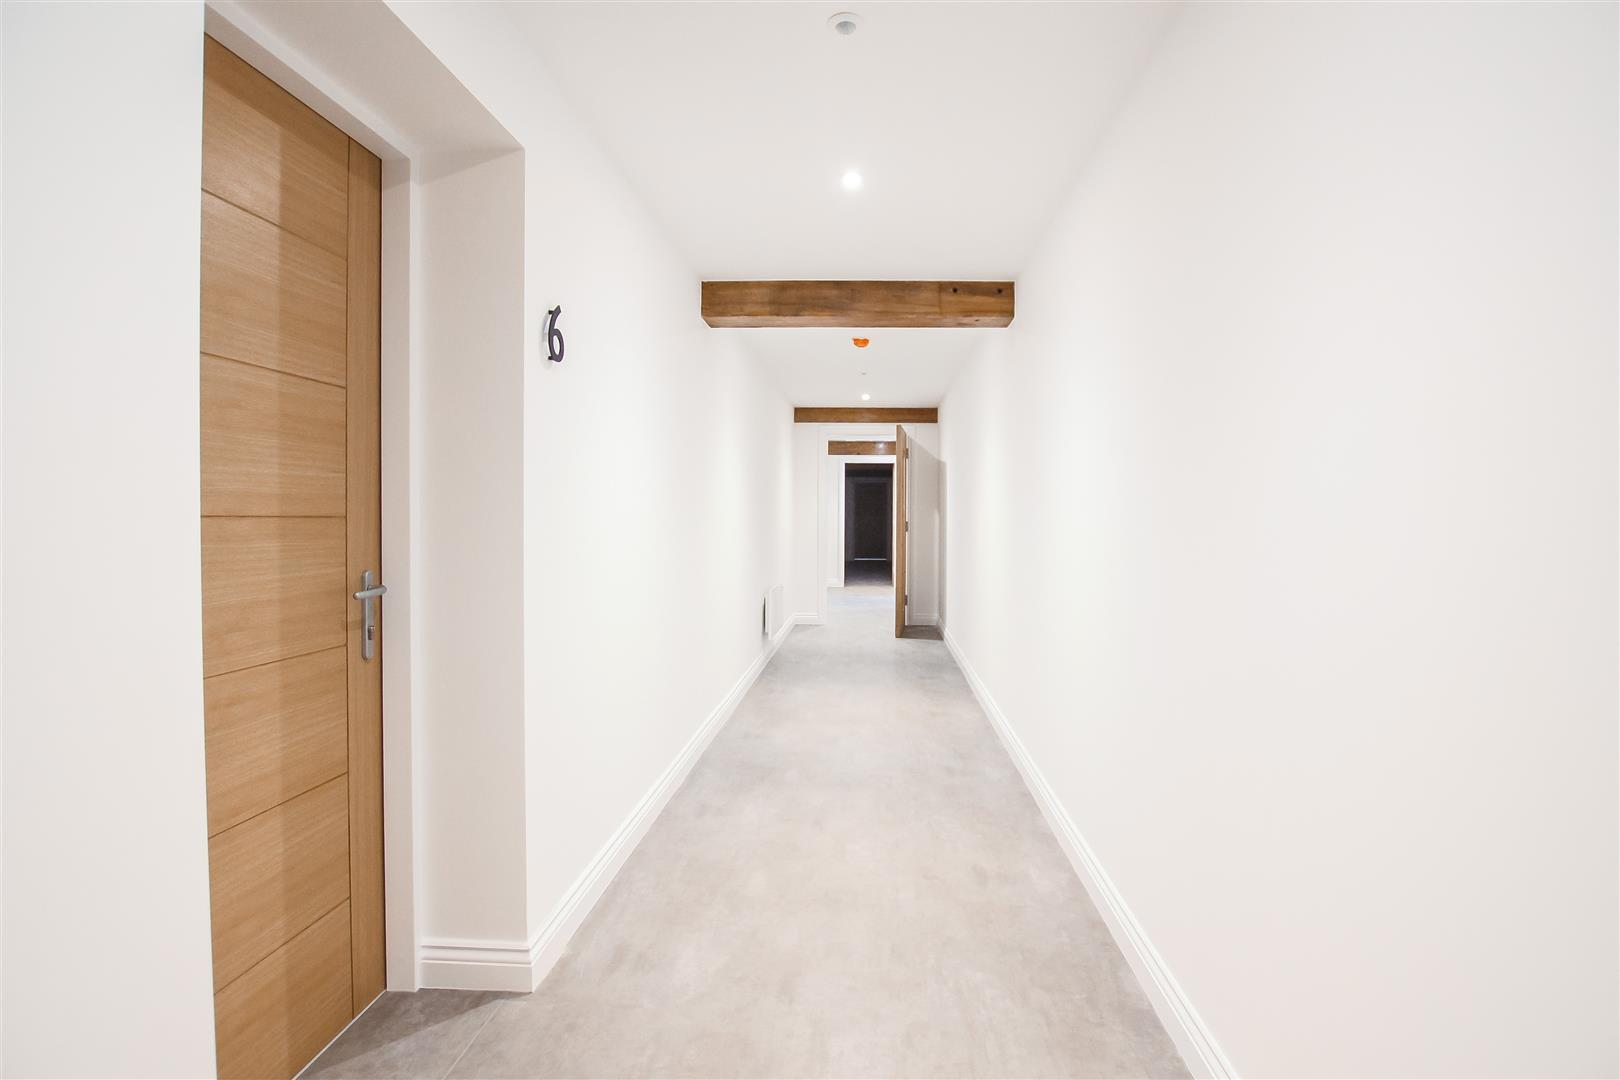 2 Bedroom Apartment For Sale - Image 13